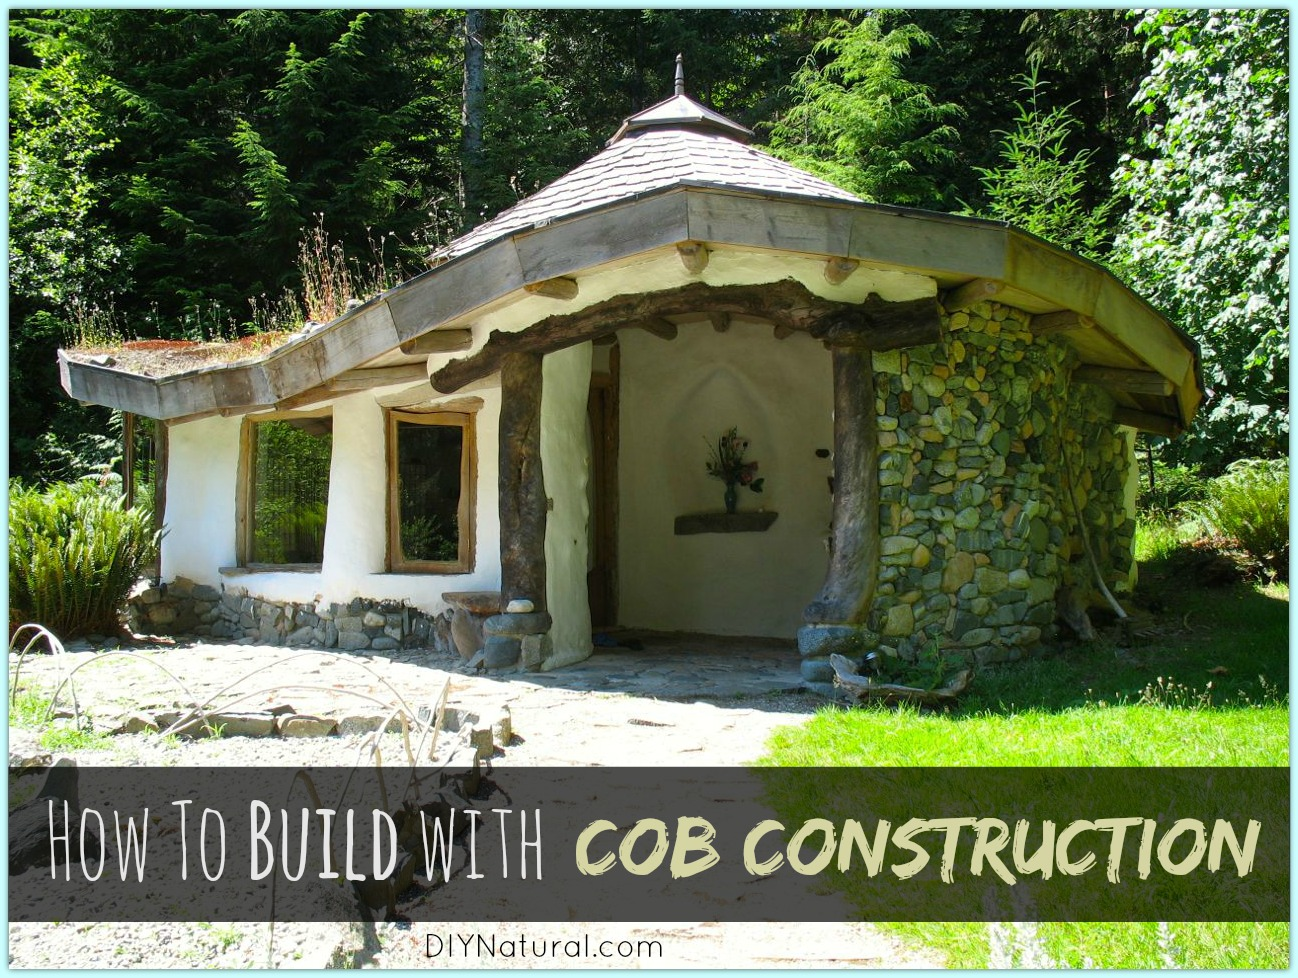 How To Build A Cob House With Construction Wiring Garage From Along 1000 Images About Plans On